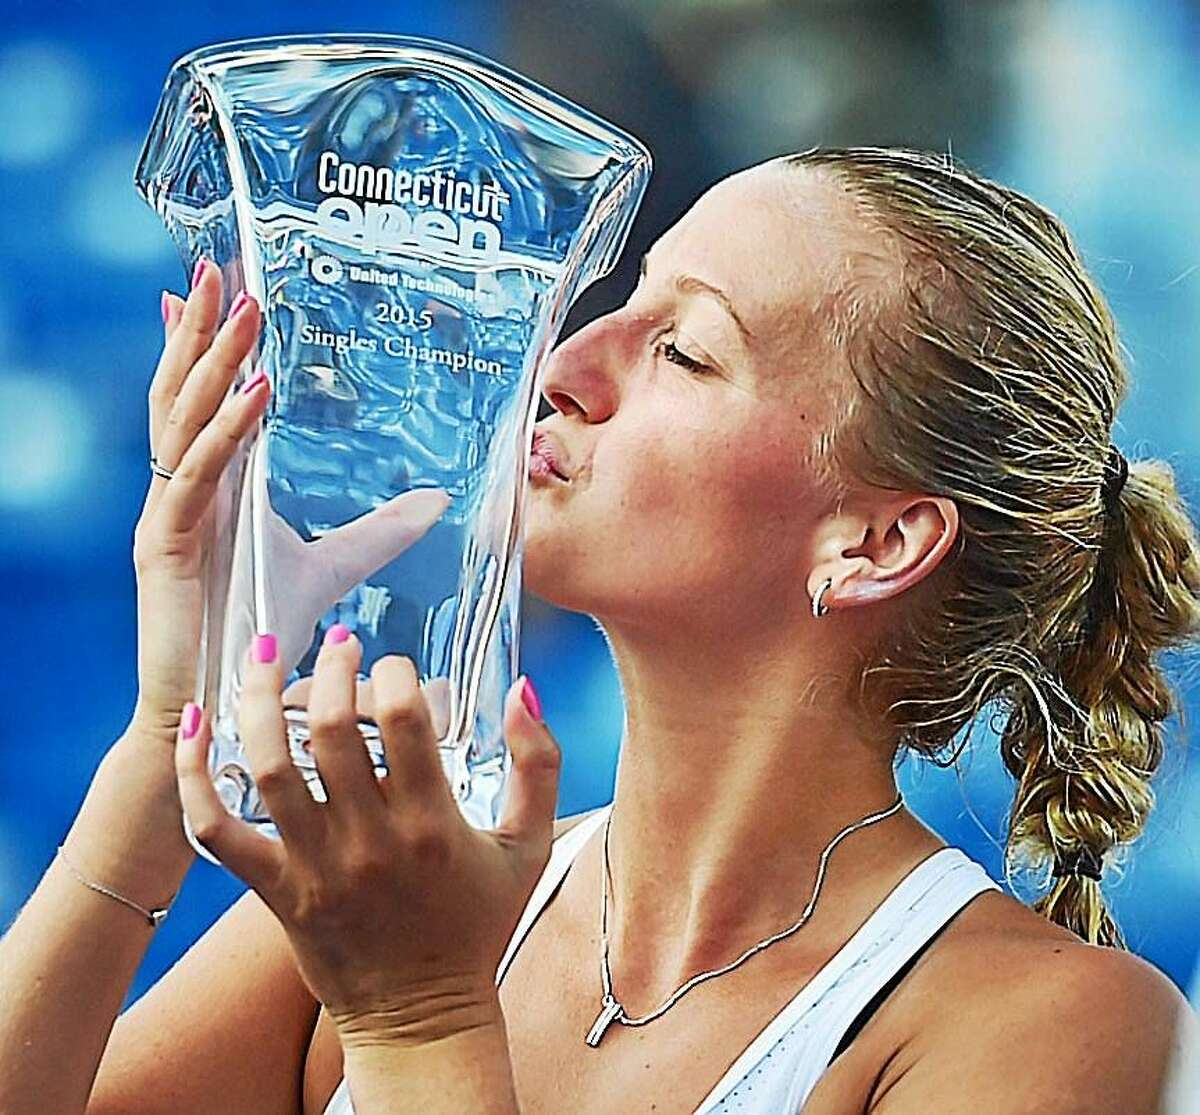 Czech Petra Kvitova kisses the winners cup after defeating fellow Czech Lucie Safarova, 6-7, 6-2, 6-2, Saturday, August 28, 2015 for the Connecticut Open championship at the Connecticut Tennis Center at Yale in New Haven. (Catherine Avalone/New Haven Register)